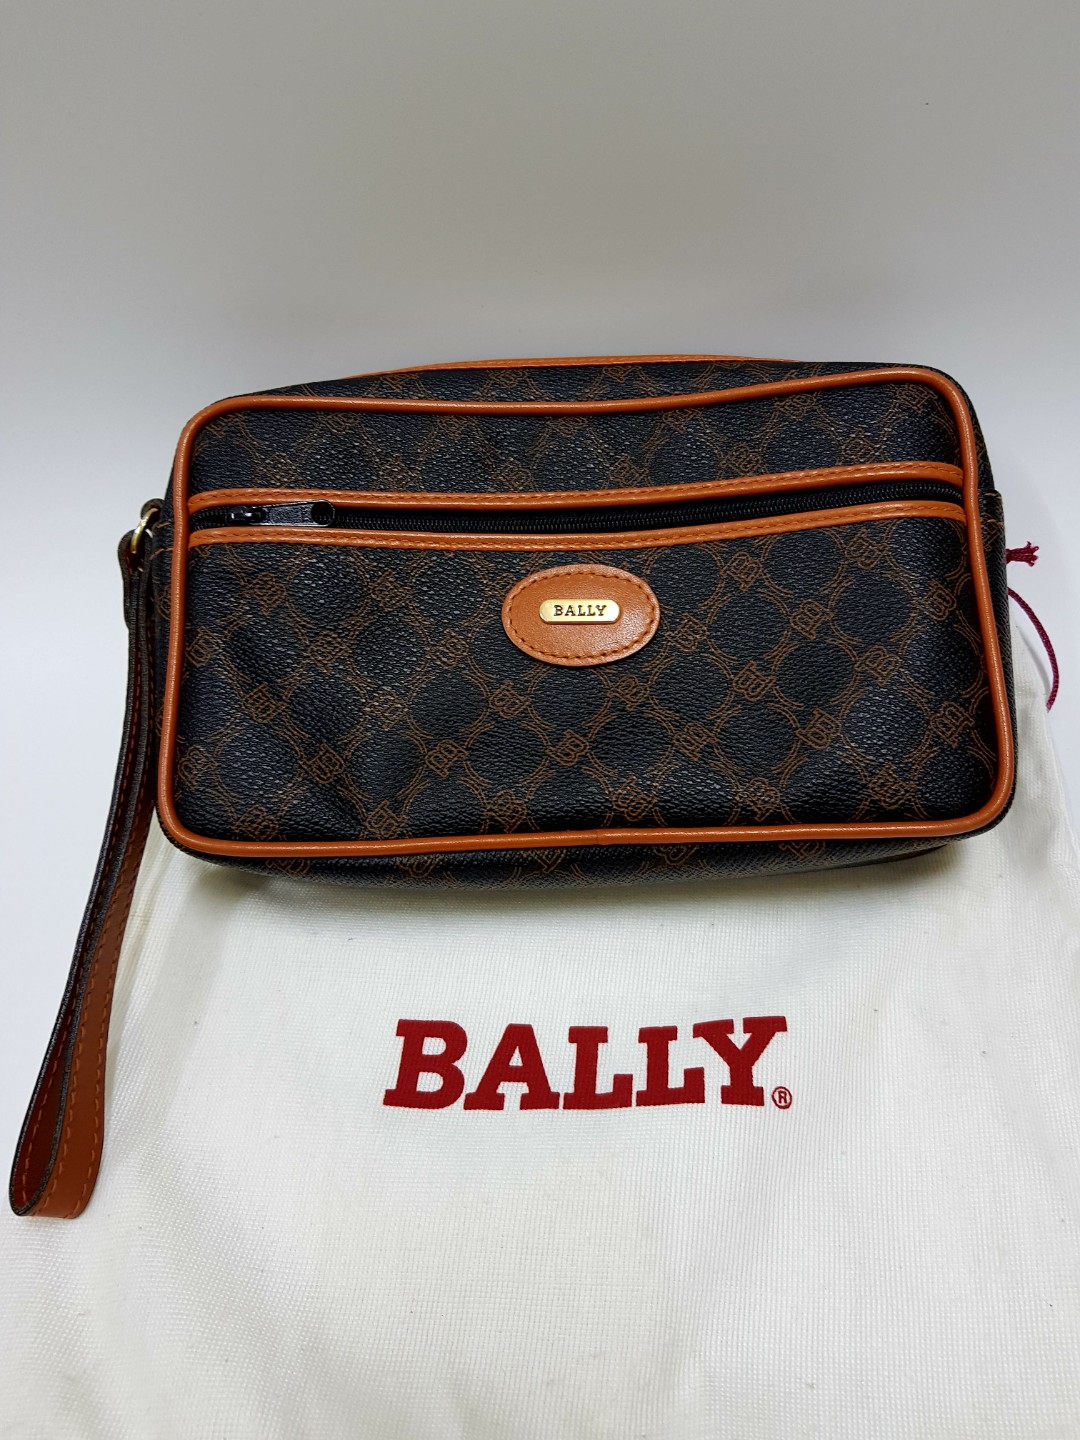 4a7187591384 Authentic Bally Clutch Bag